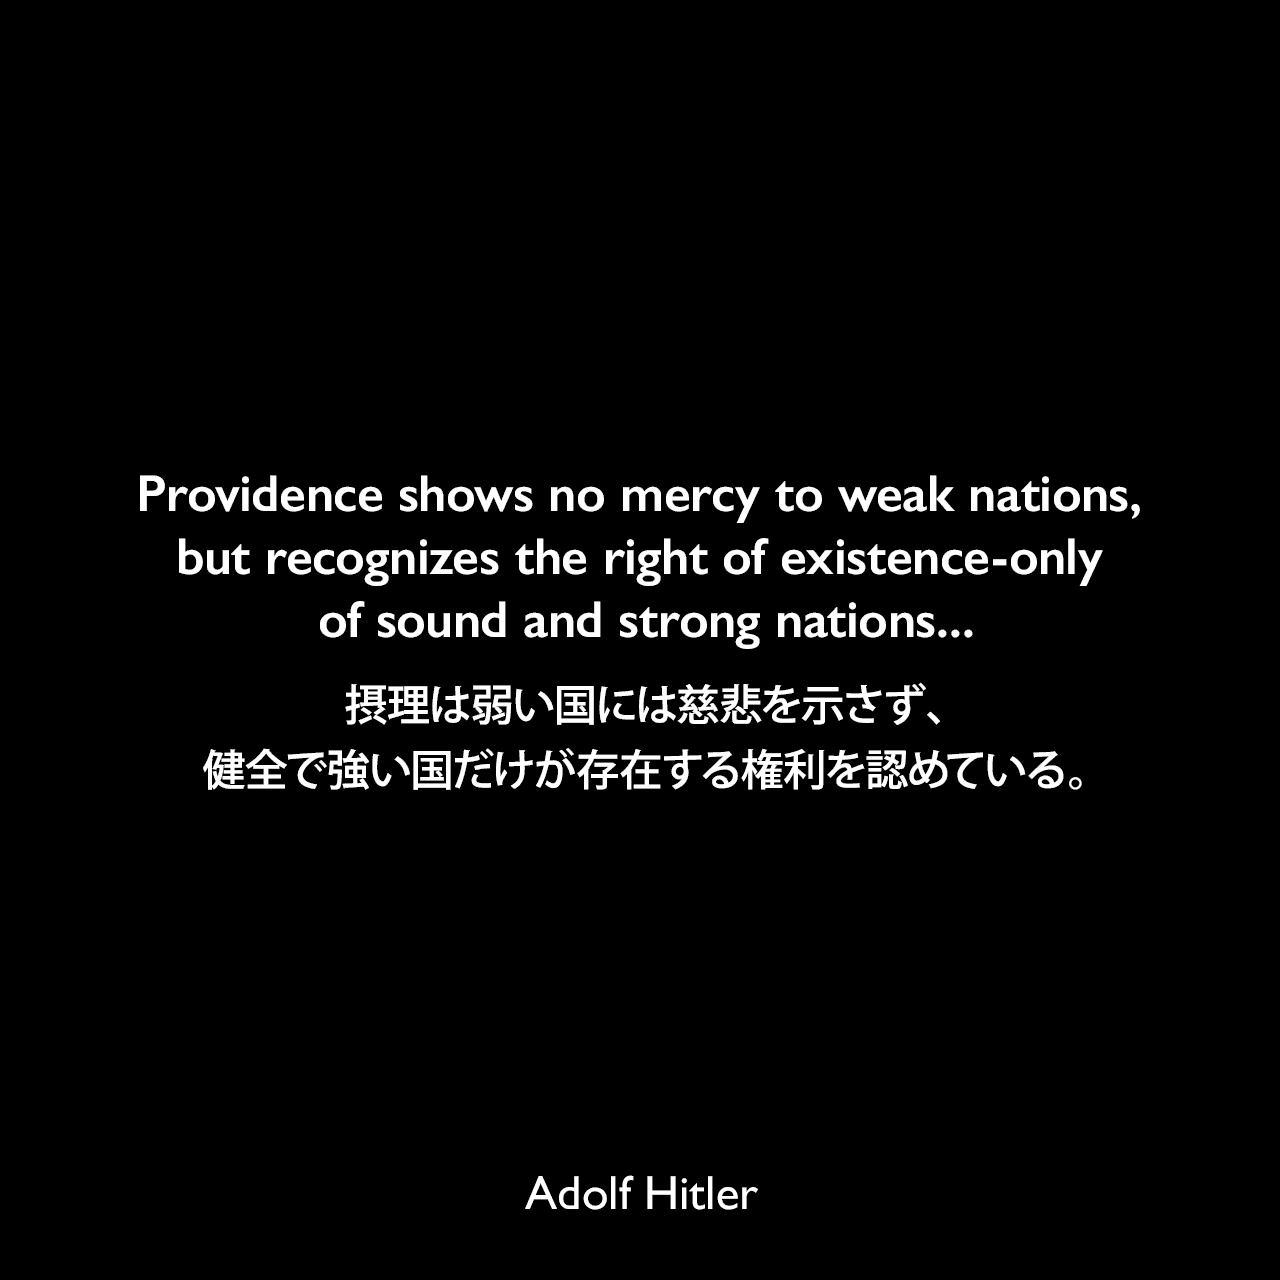 Providence shows no mercy to weak nations, but recognizes the right of existence-only of sound and strong nations...摂理は弱い国には慈悲を示さず、健全で強い国だけが存在する権利を認めている。- 1945年2月24日国民社会党25周年記念でのスピーチよりAdolf Hitler